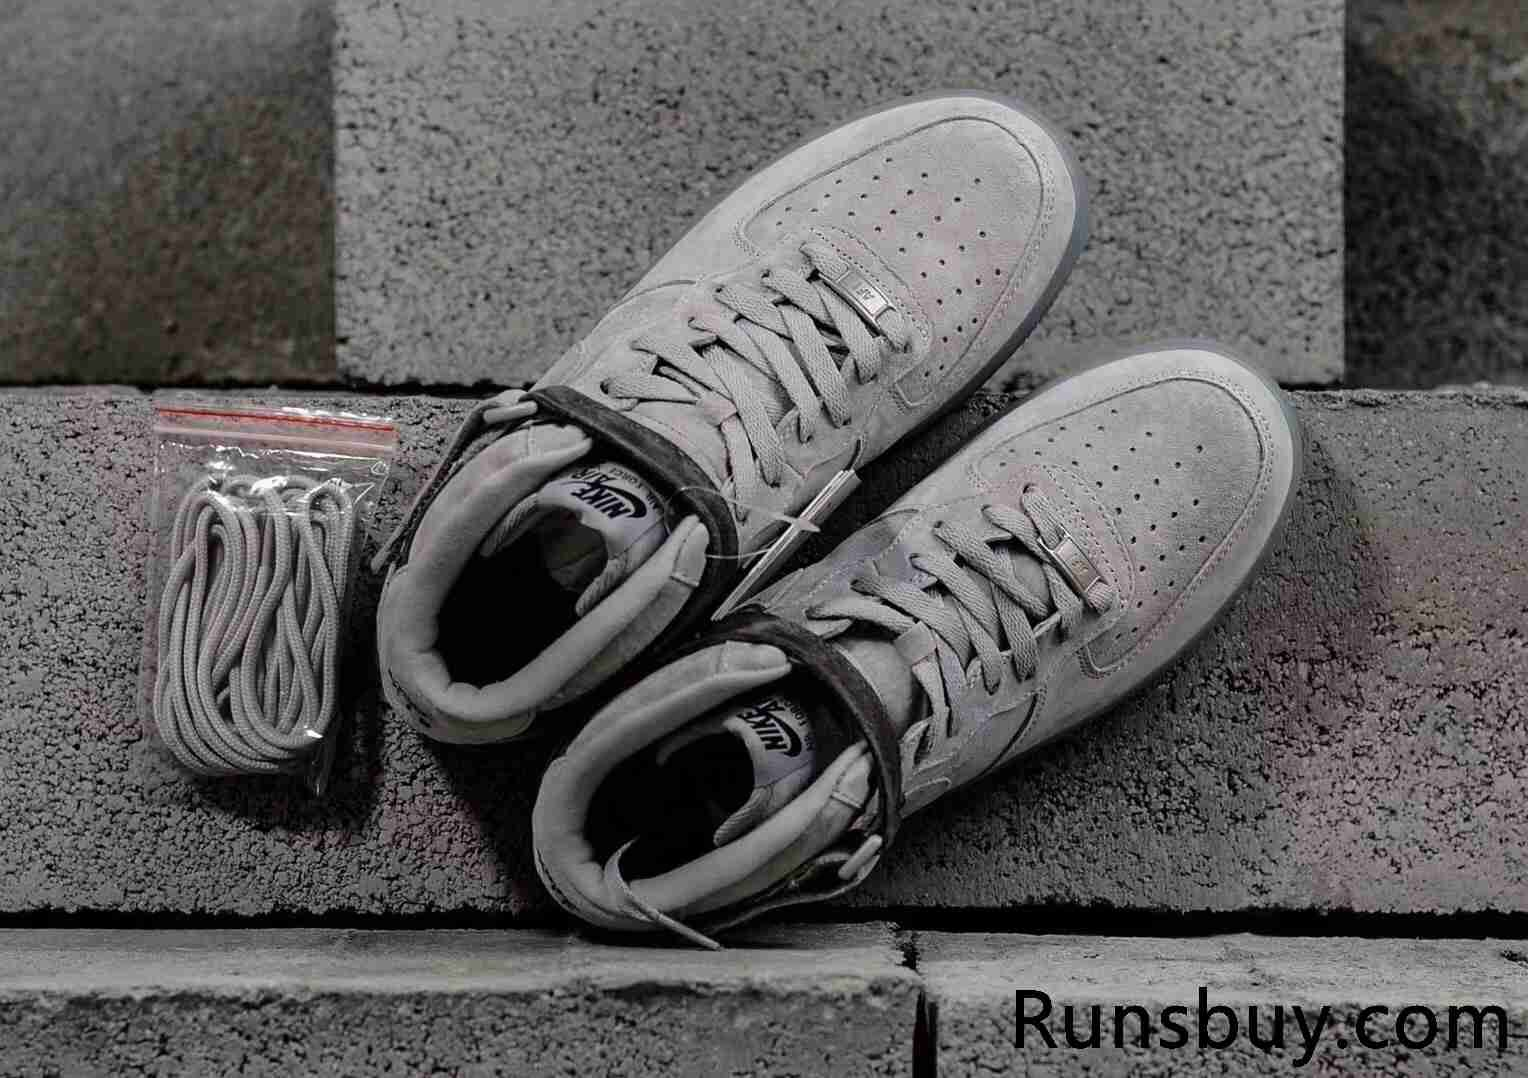 c8562d673f13 Nike Air Force 1 Mid x Reigning Champ Gray Off White Women Men Unisex Nike  Air Force 1 Mid Reigning Champ Reflective Grey Black 807618 200 ...